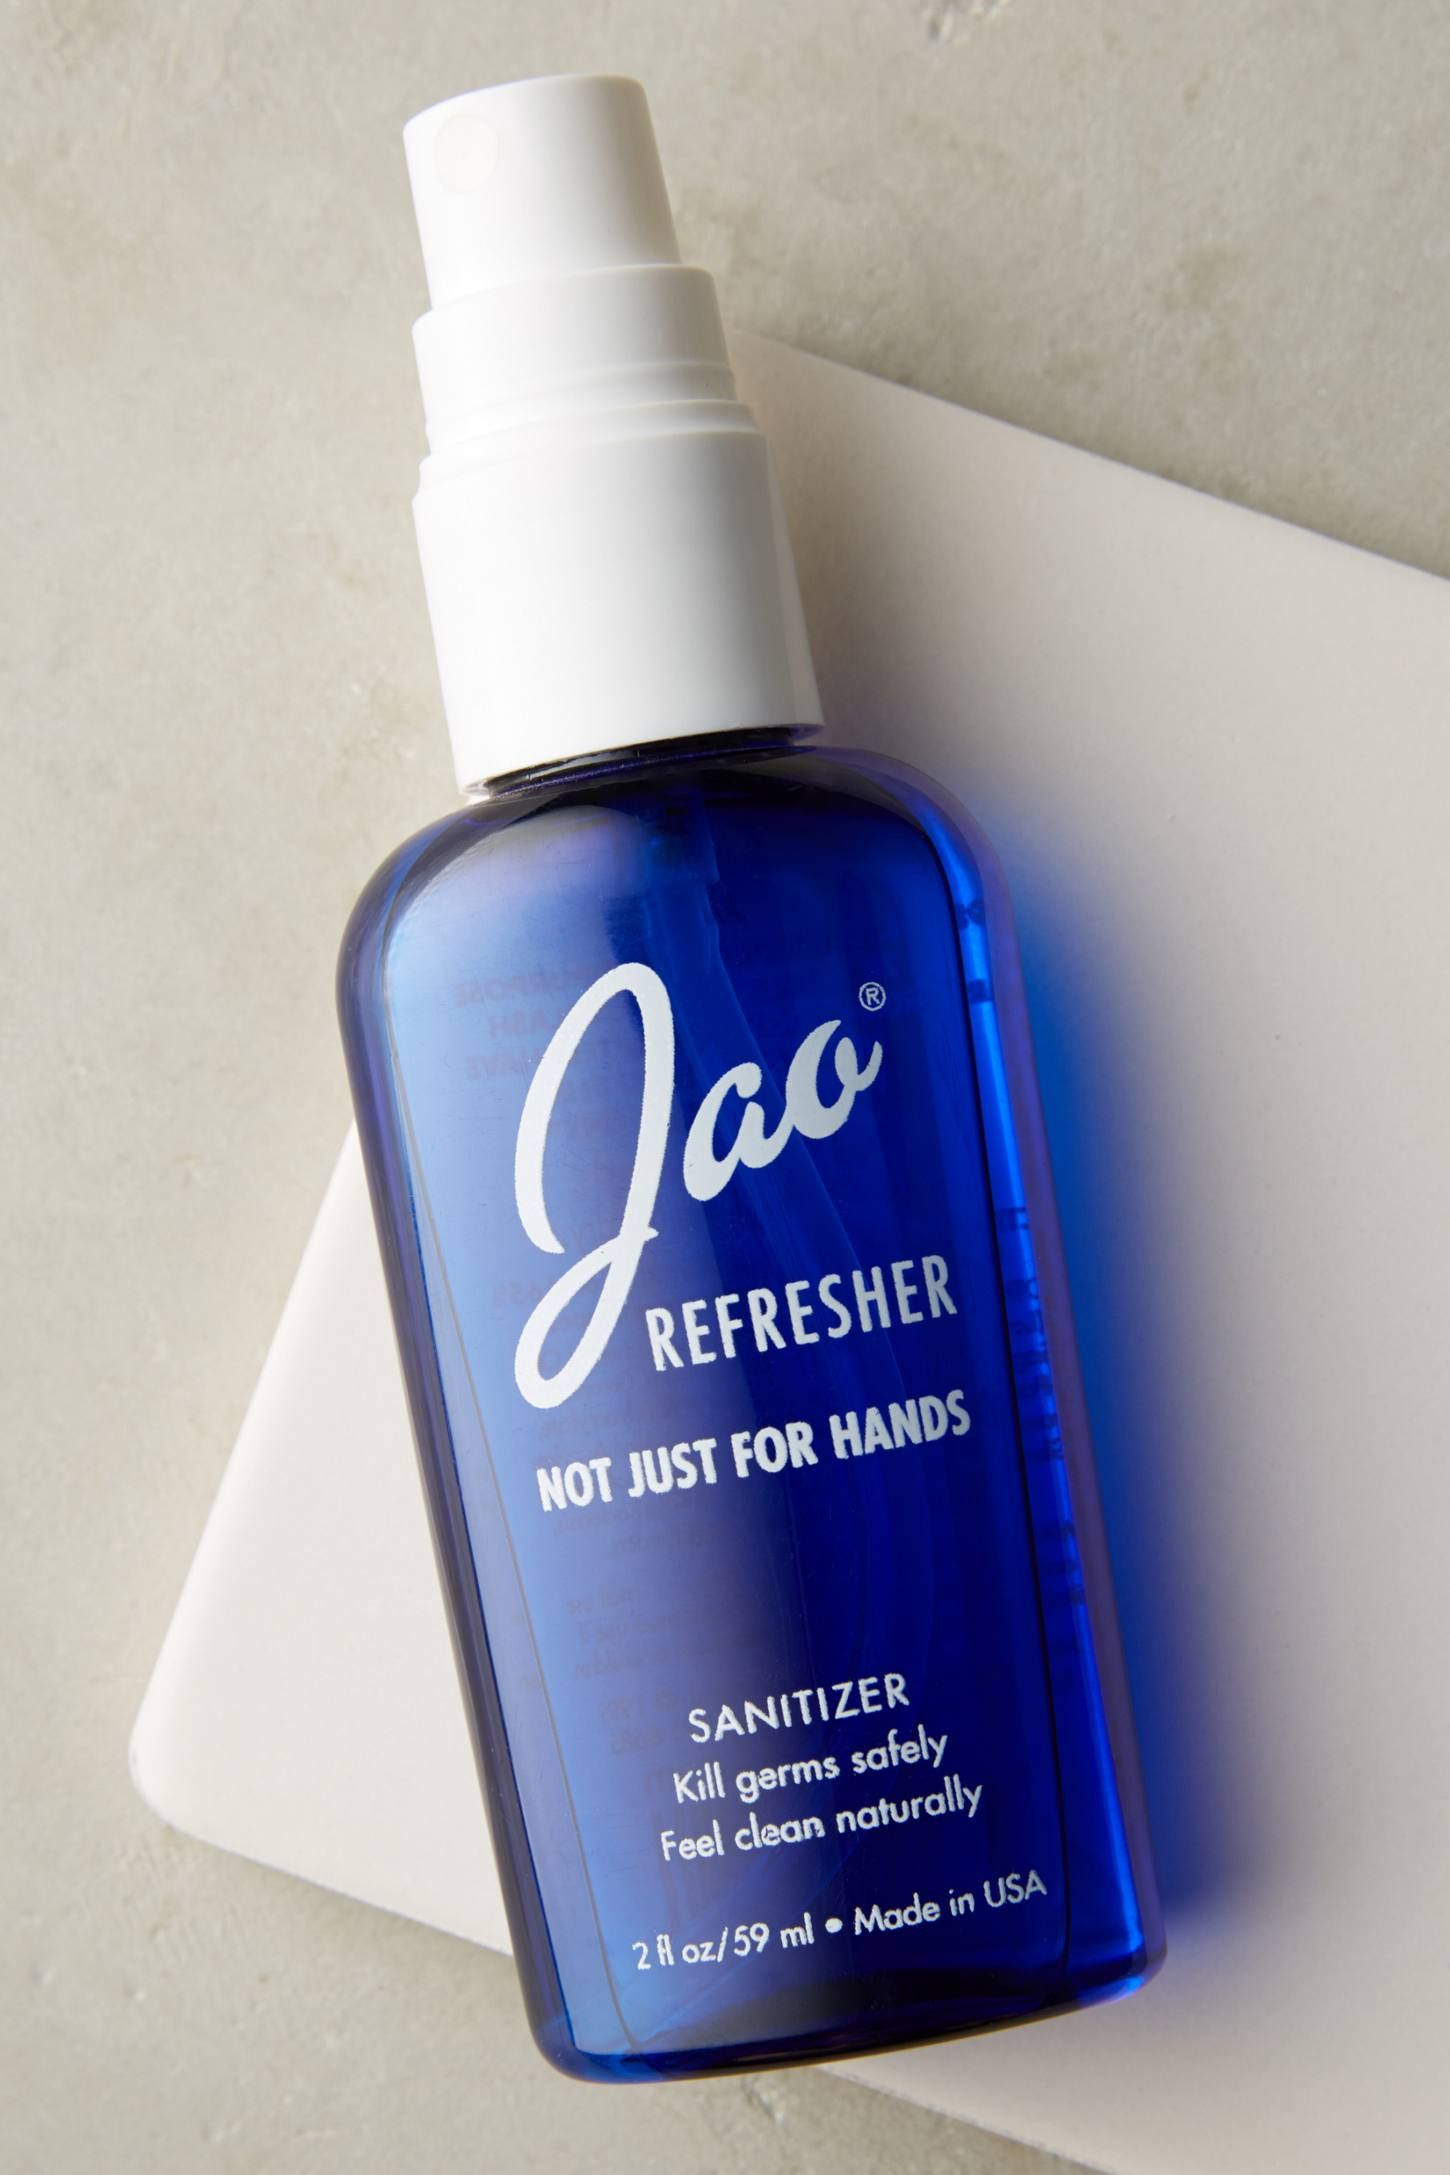 Jao Brand Refresher Not Just For Hands Sanitizer Hand Sanitizer